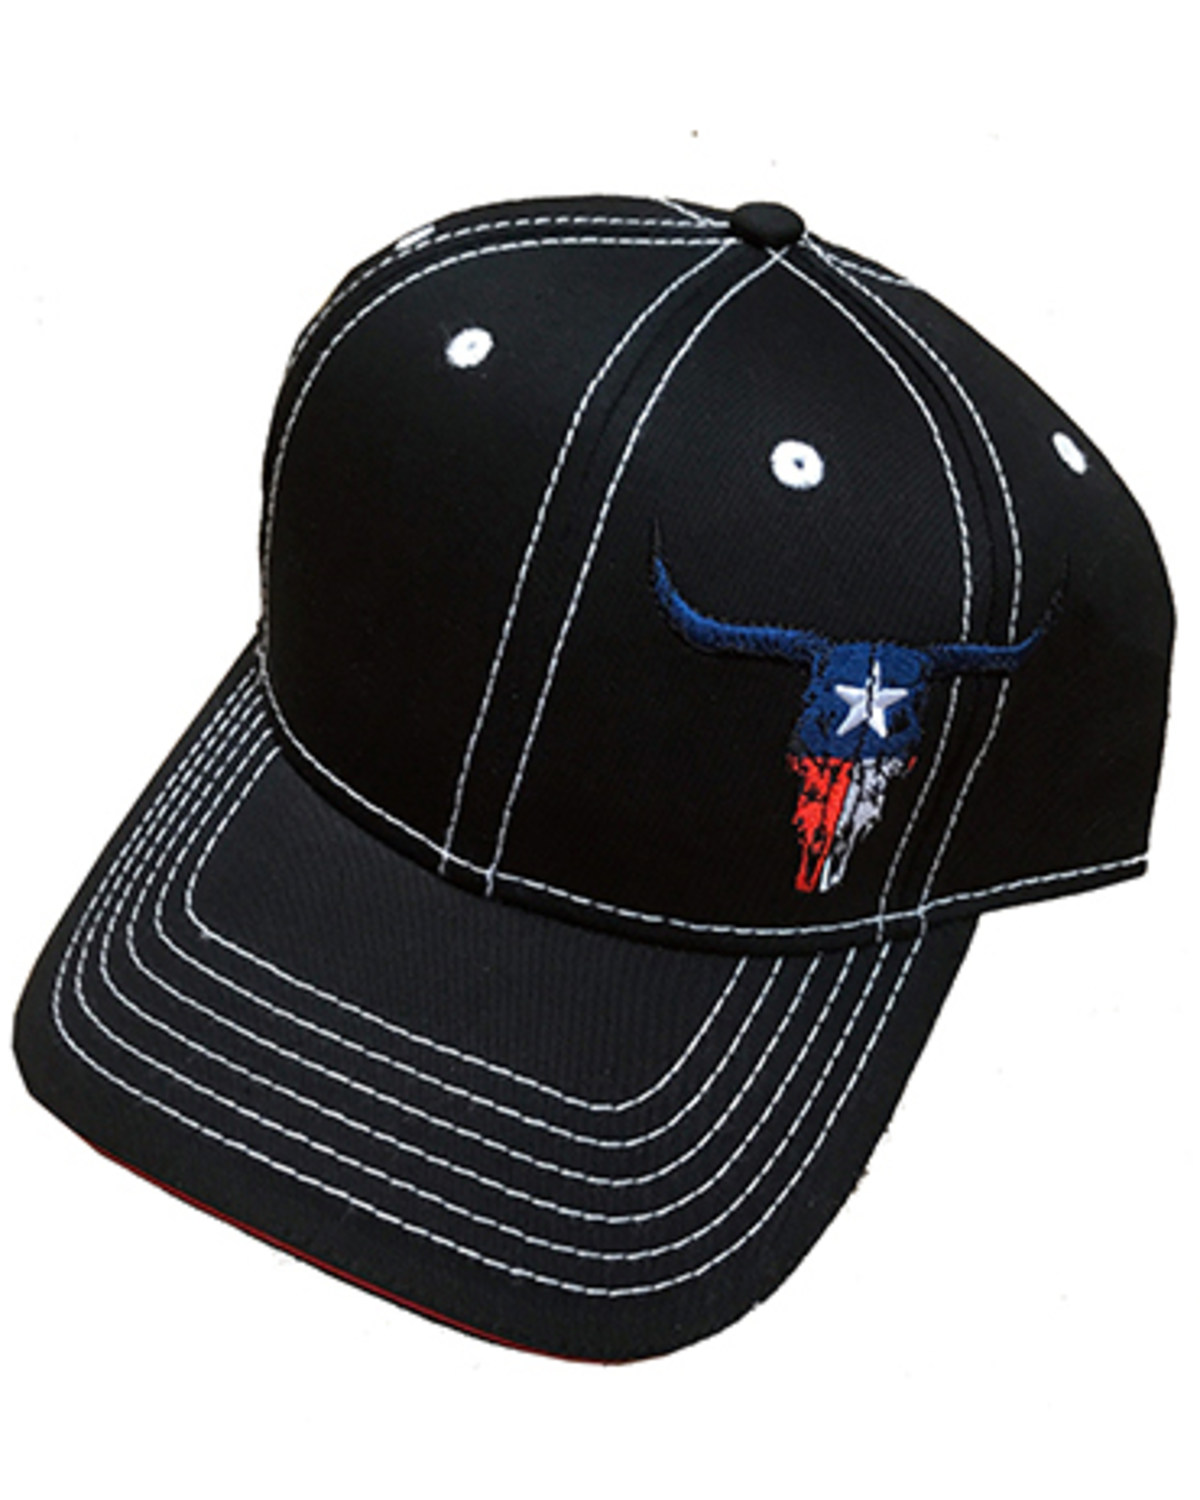 eedf0d3cd405b6 ... uk cowboy hardware texas skull ball cap black hi res 420d7 caca9